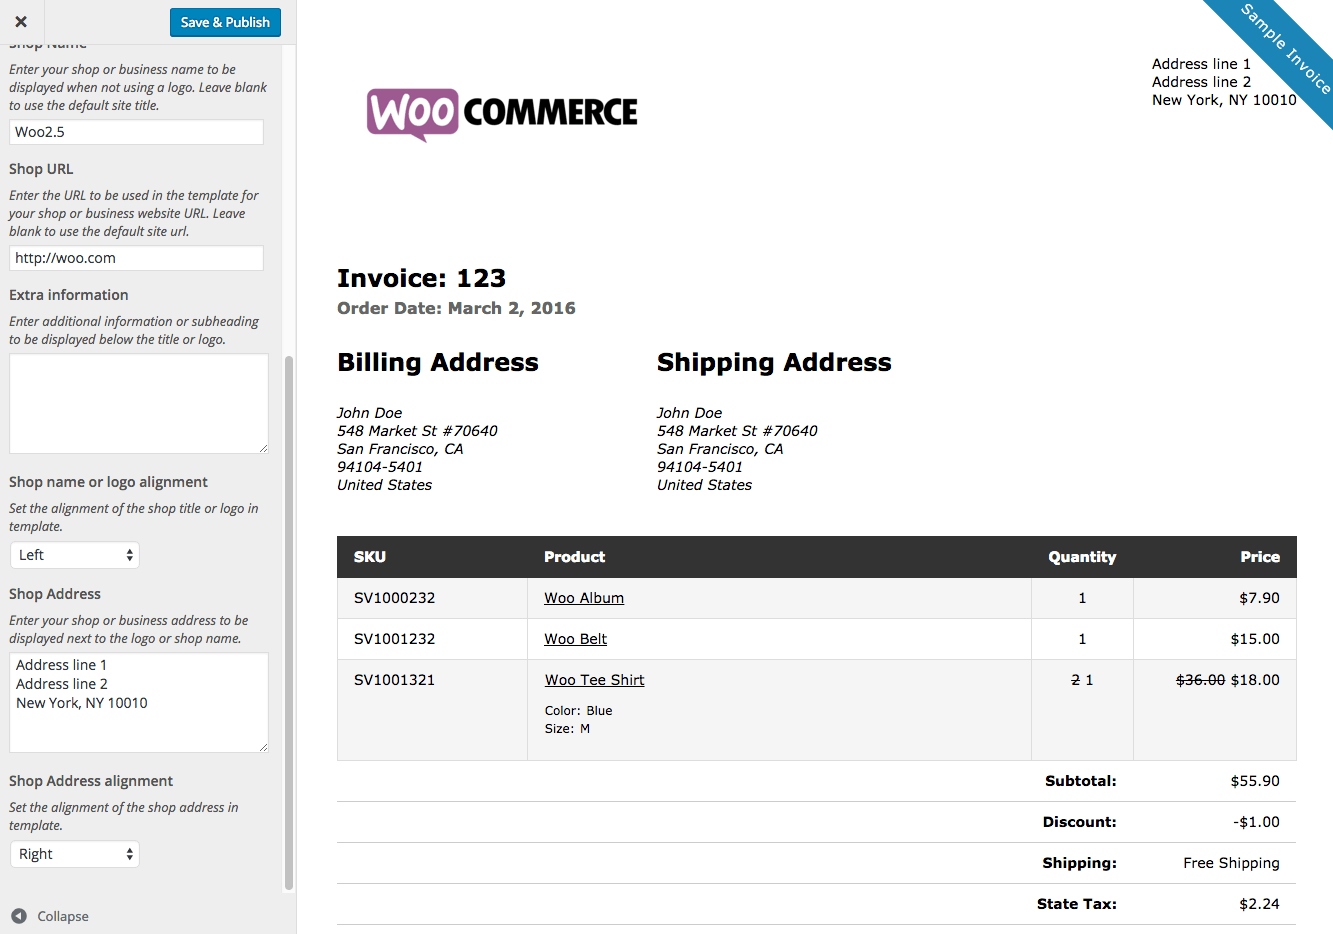 Opposenewapstandardsus  Picturesque Woocommerce Print Invoices Amp Packing Lists  Woocommerce Docs With Extraordinary Woocommerce Print Invoices  Packing Lists Customizer With Charming Amount Received Receipt Format Also Rrsp Contribution Receipt In Addition Trust Receipt Definition And Selling A Car Receipt Template As Well As Proof Of Receipt Letter Additionally Income Tax Return Receipt From Docswoocommercecom With Opposenewapstandardsus  Extraordinary Woocommerce Print Invoices Amp Packing Lists  Woocommerce Docs With Charming Woocommerce Print Invoices  Packing Lists Customizer And Picturesque Amount Received Receipt Format Also Rrsp Contribution Receipt In Addition Trust Receipt Definition From Docswoocommercecom